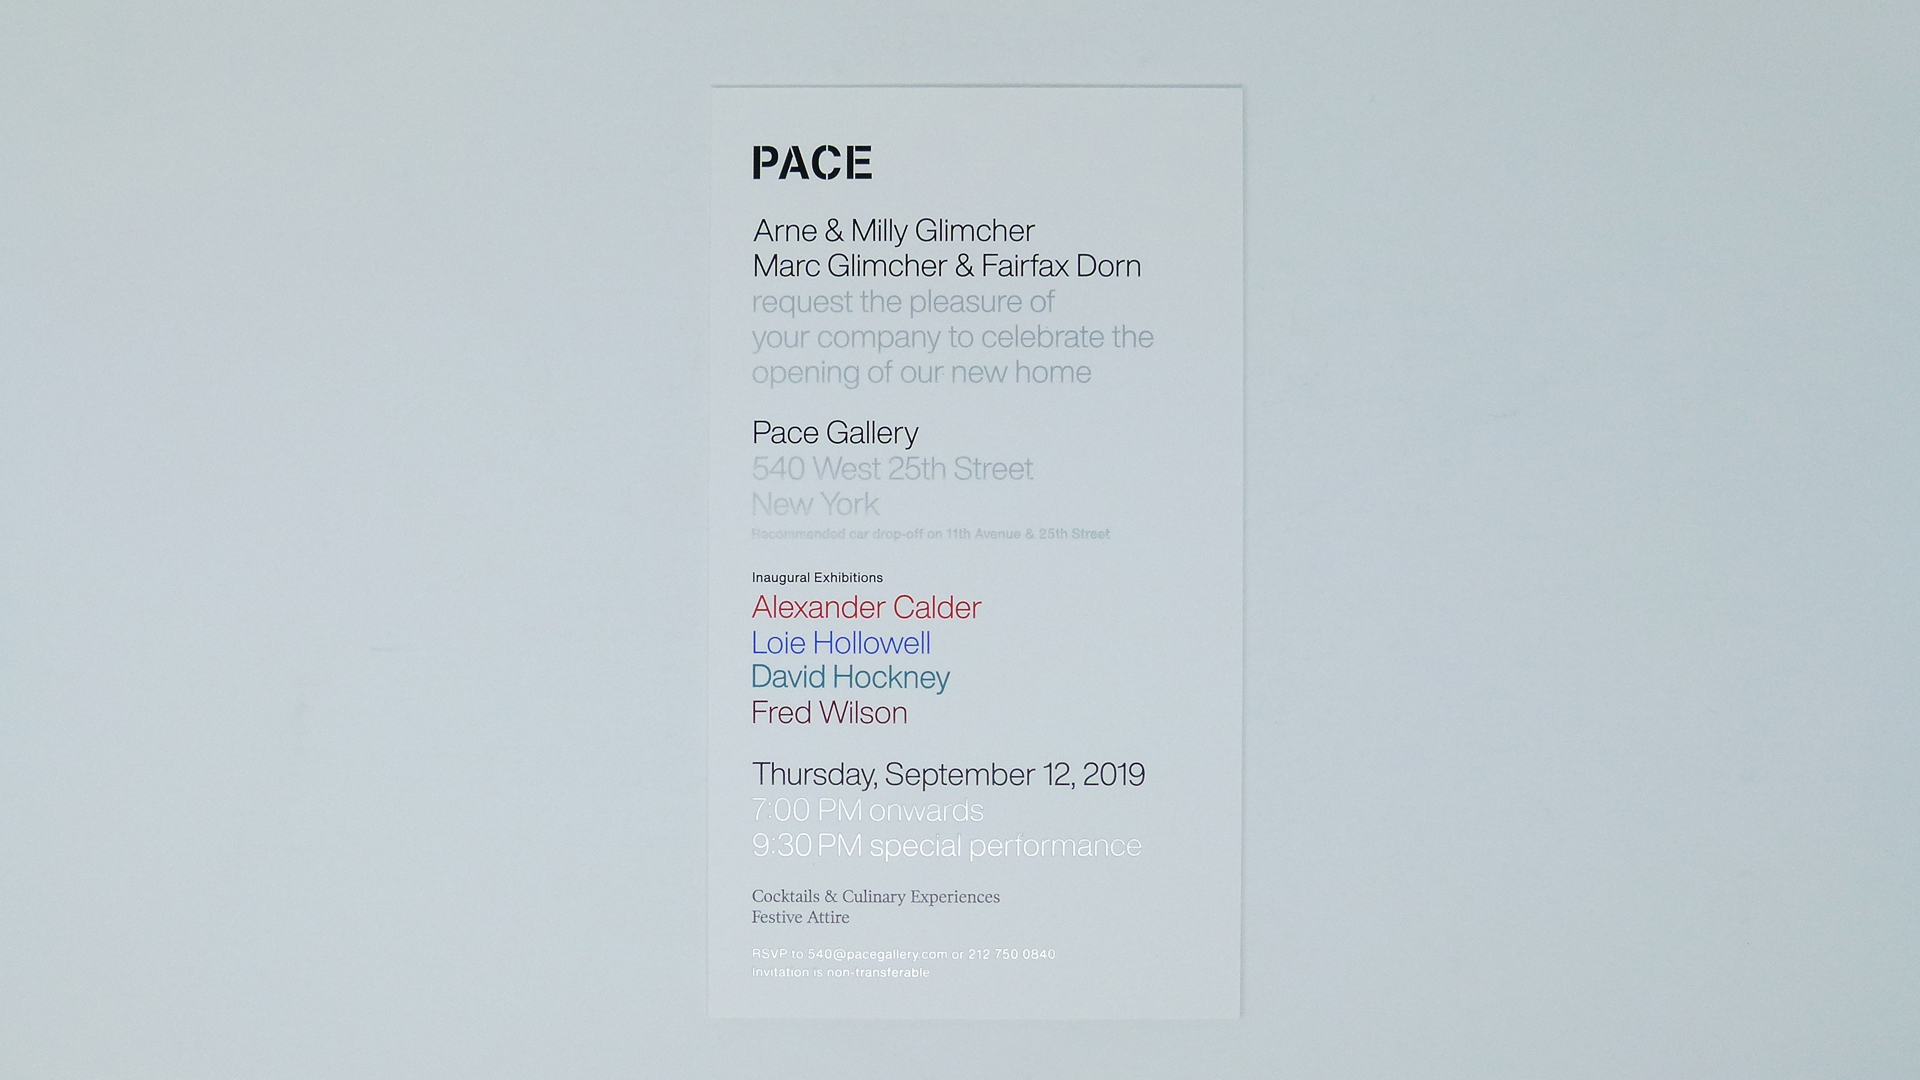 Animated Pace Gallery Invitation by DataGraphic - PaperSpecs